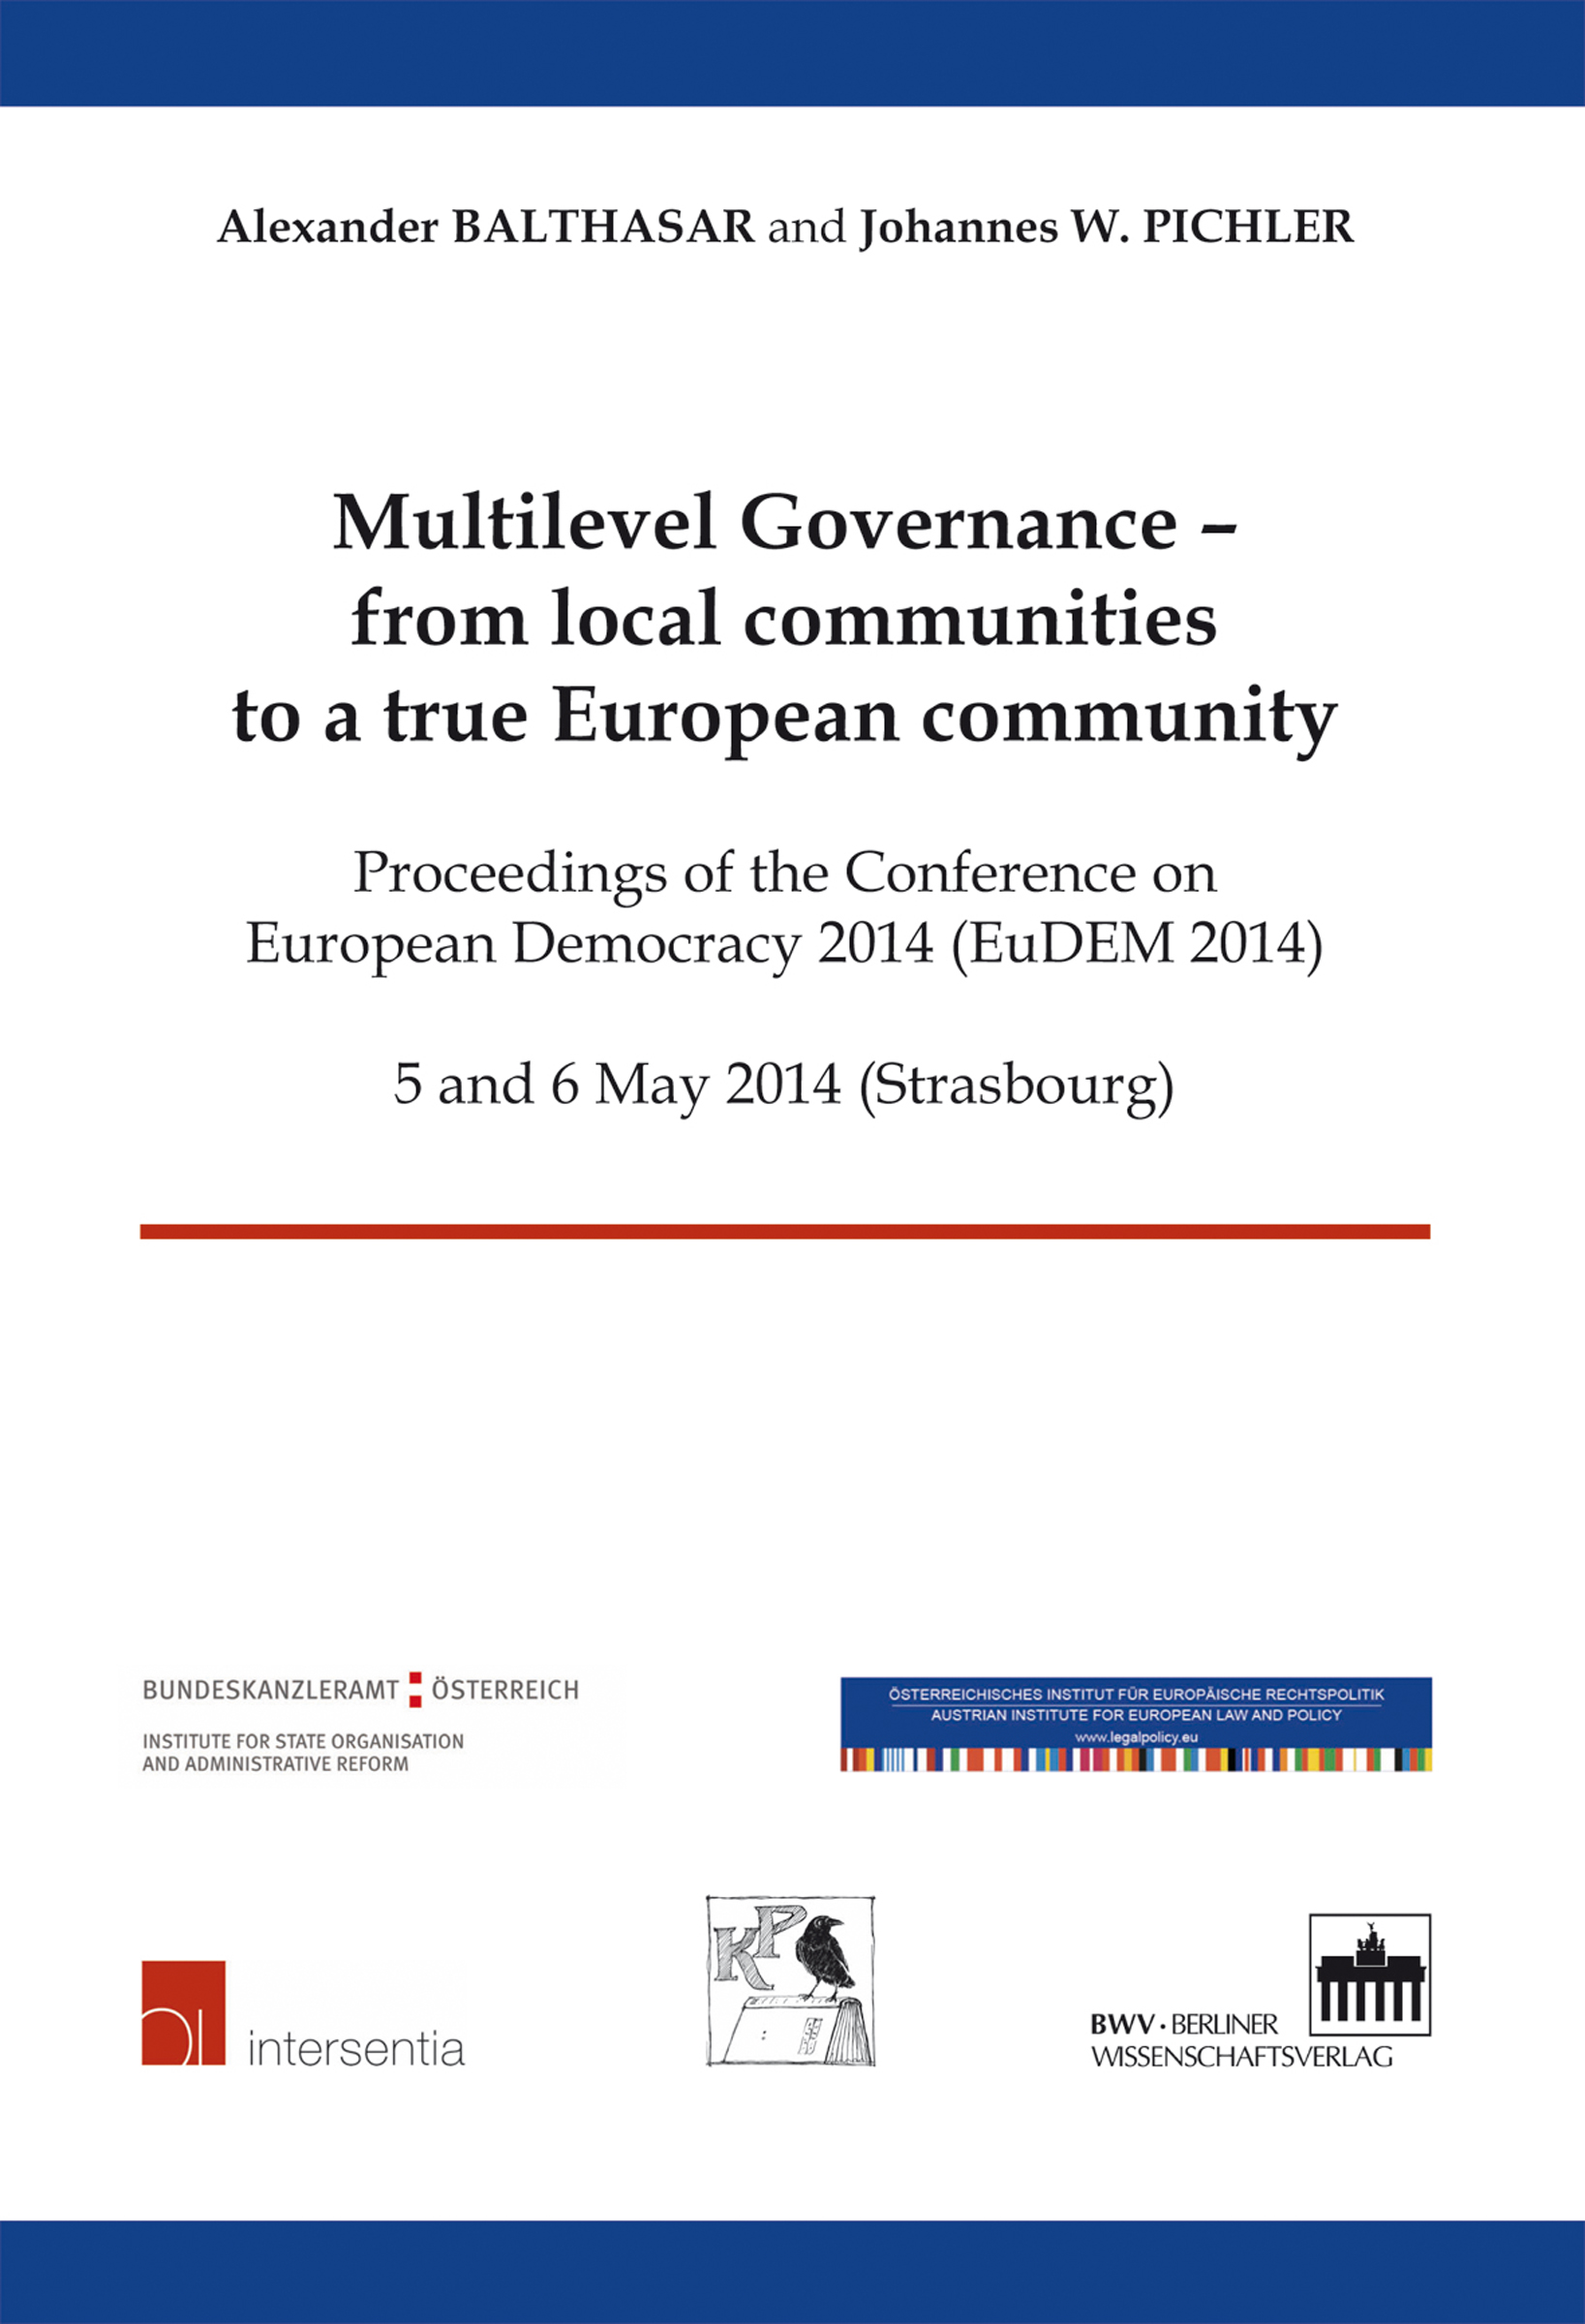 Multilevel Governance - from local communities to a true European community